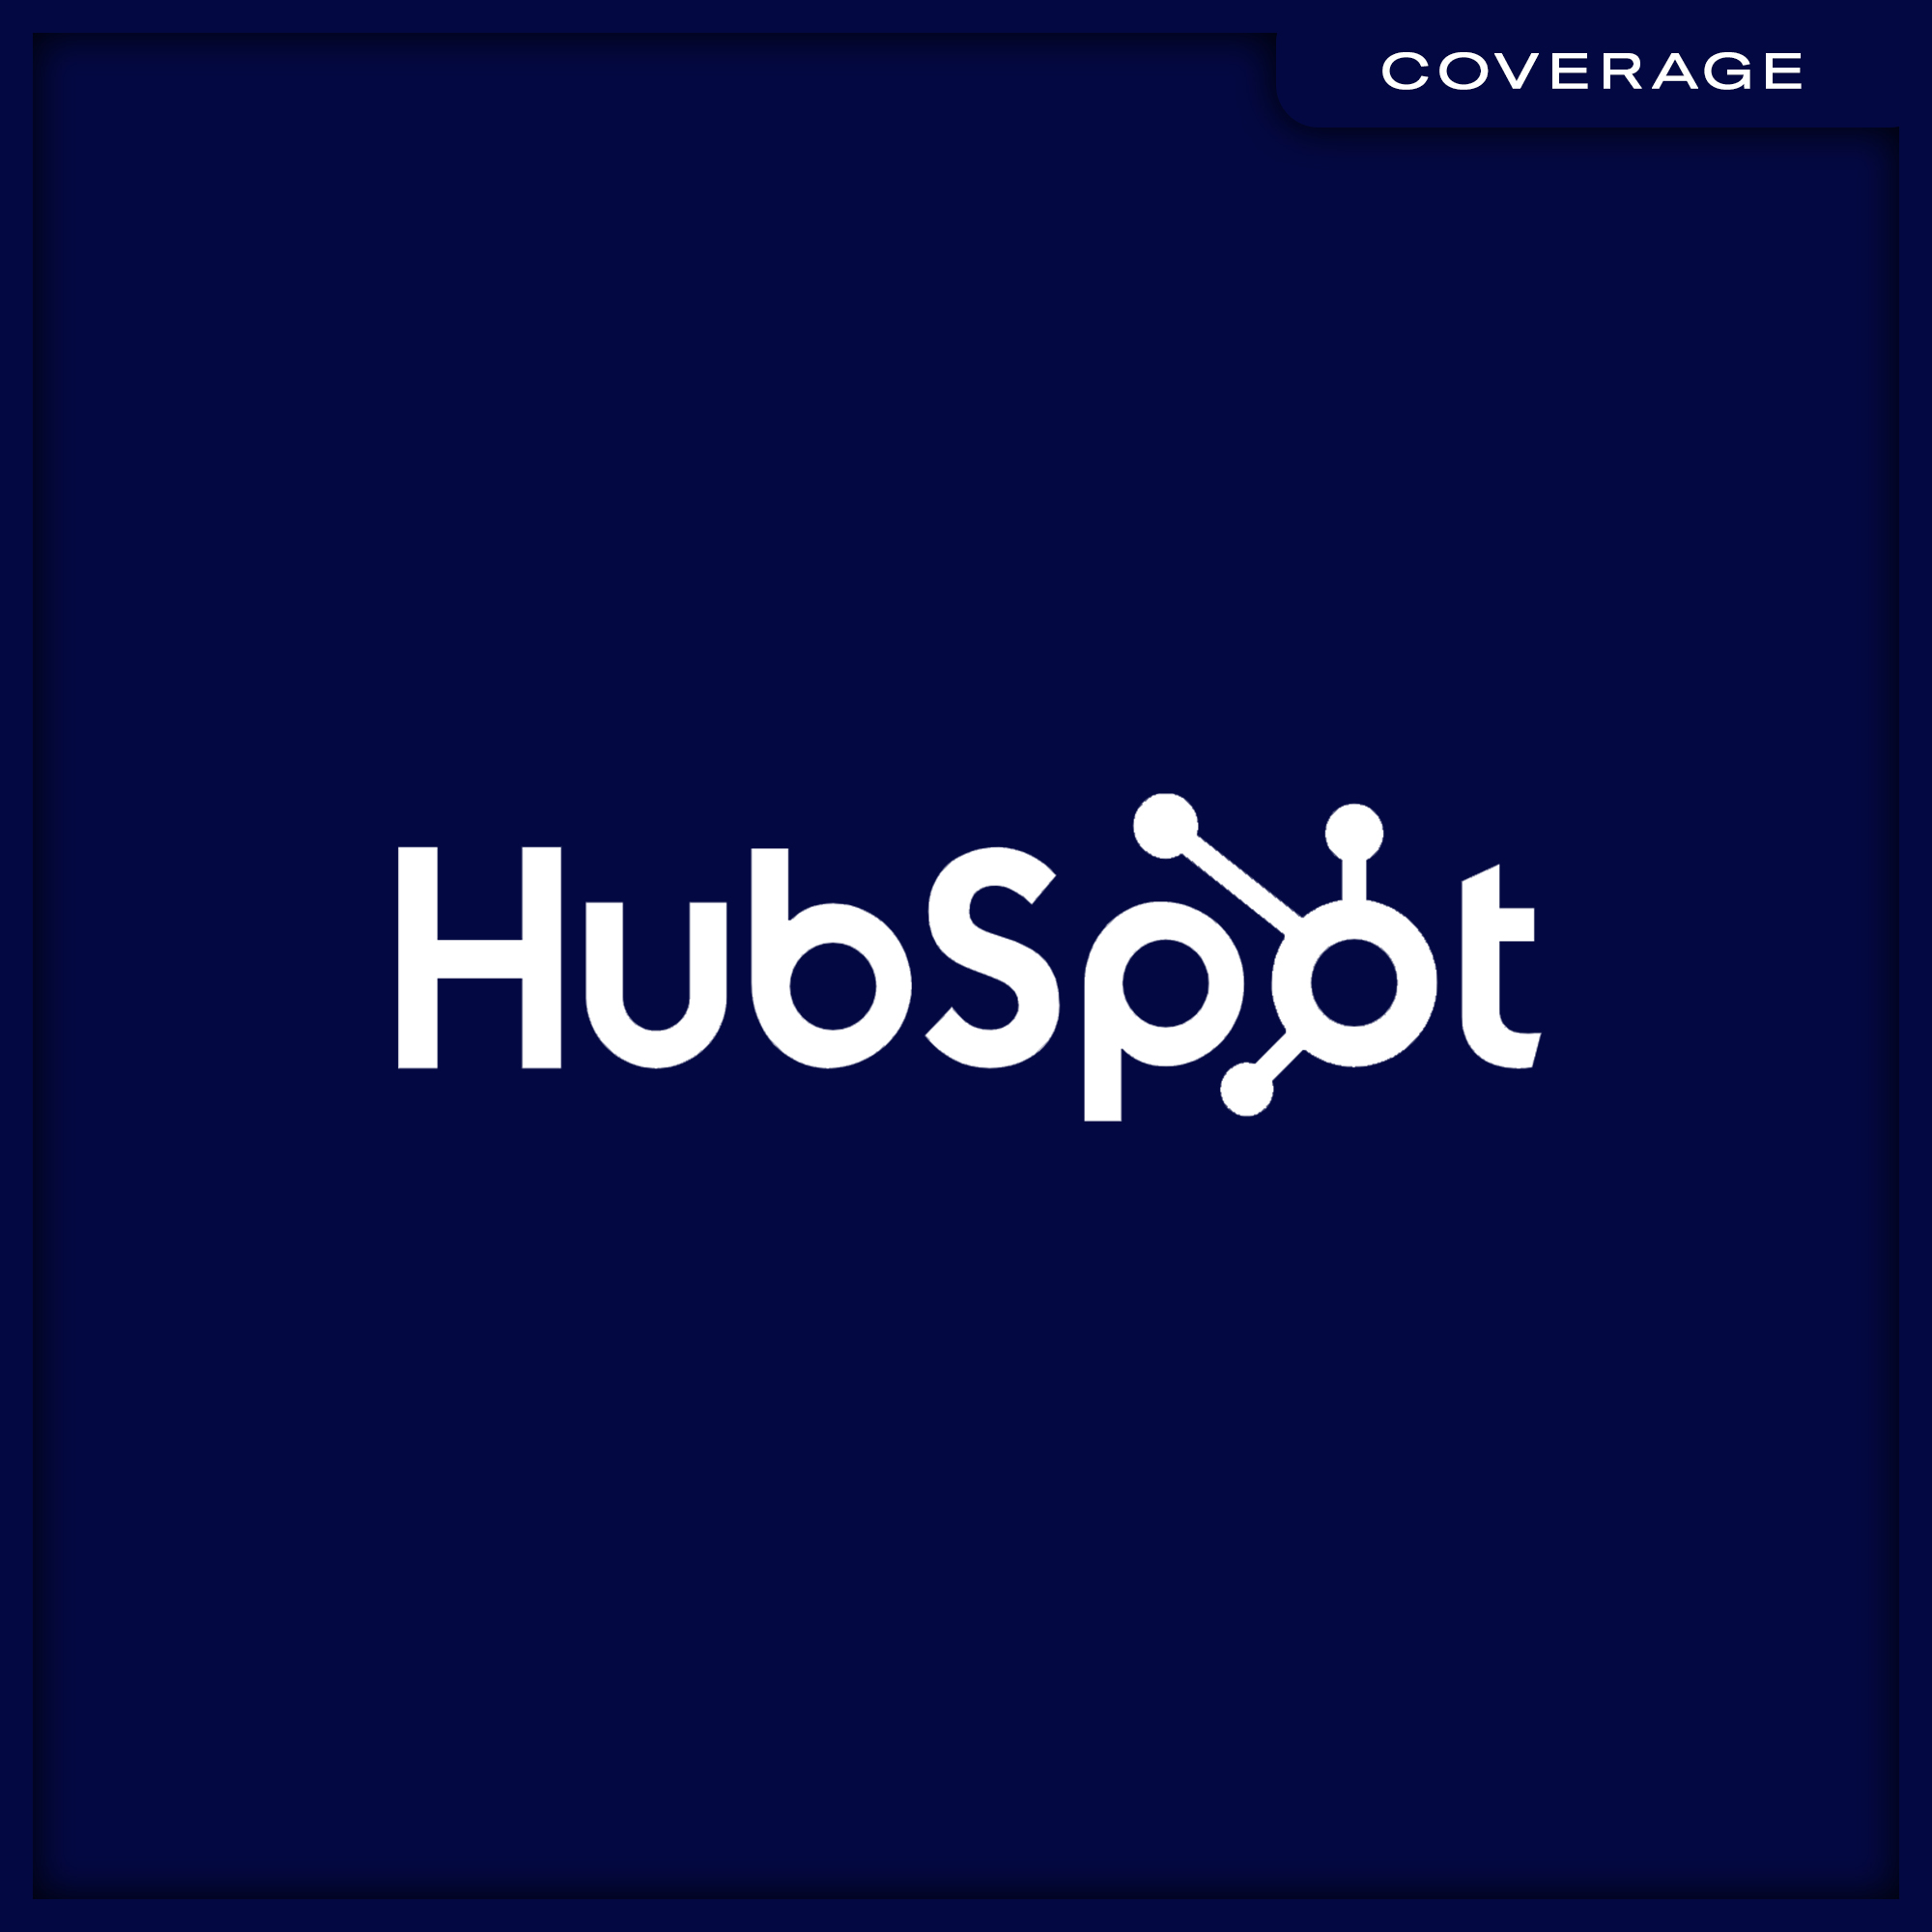 10-Coverage--HubSpot--Marketing-Trends-to-Watch-in-2021,-According-to-21-Experts